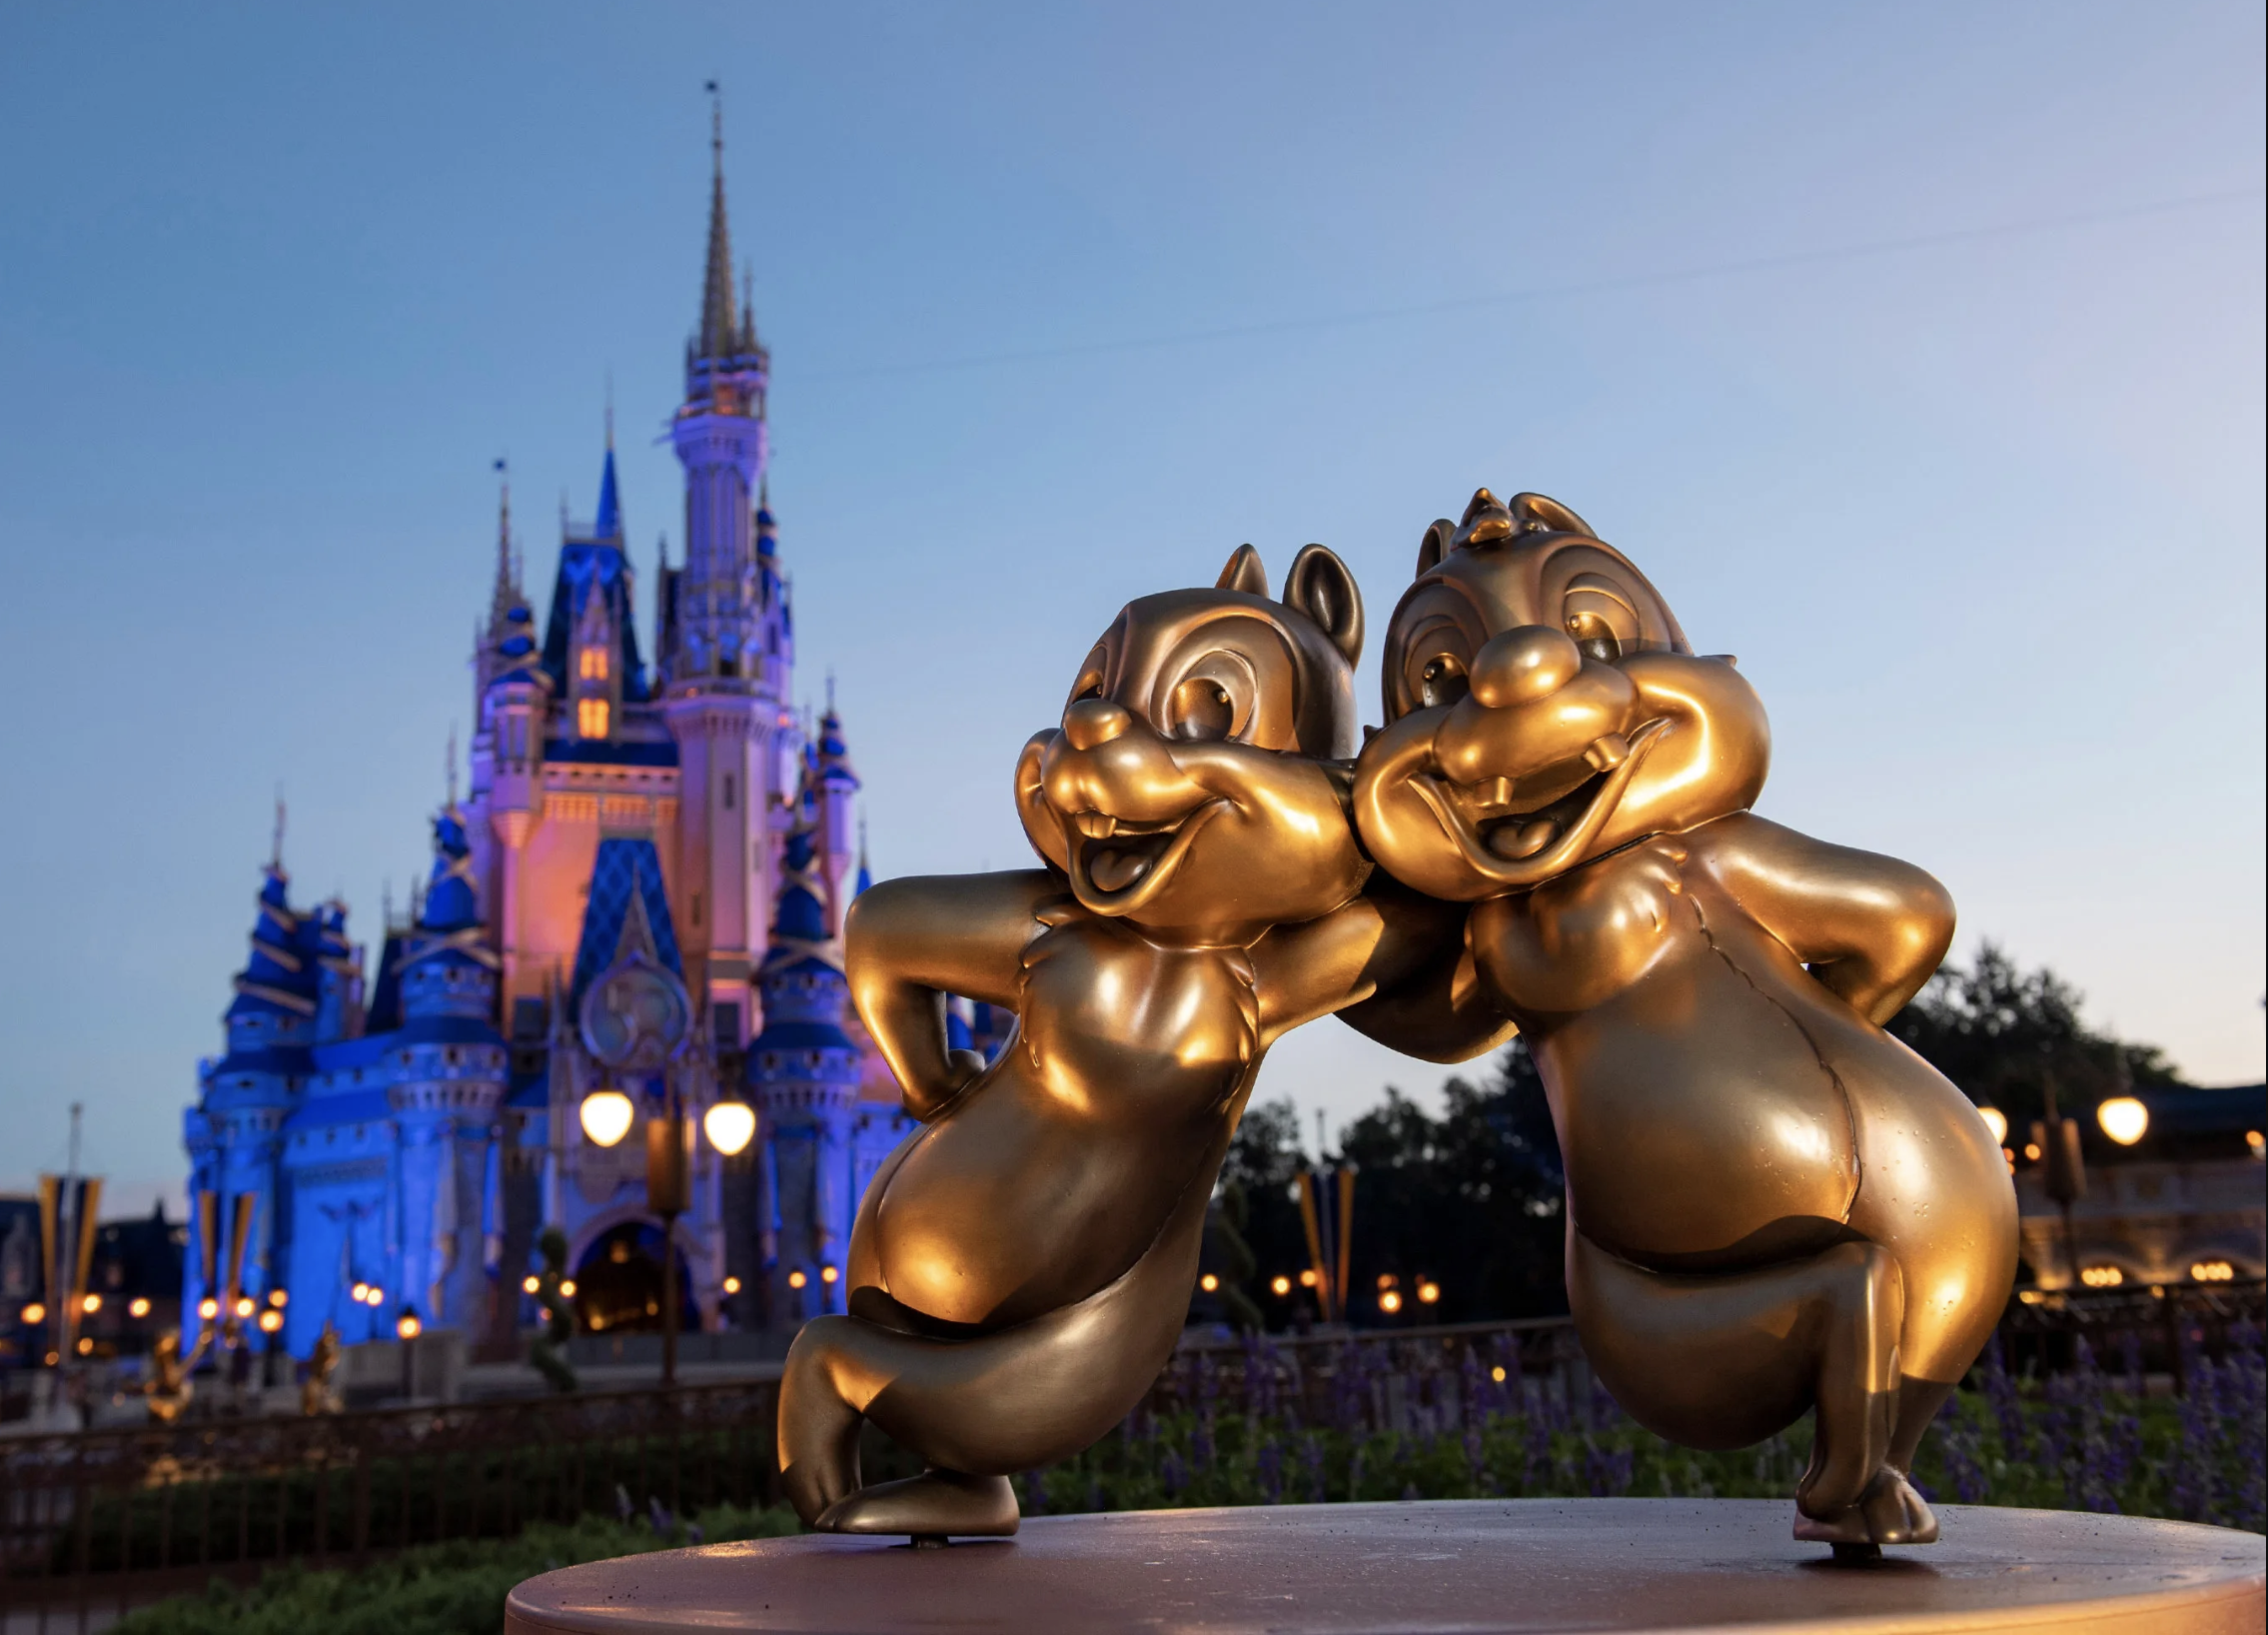 gold chip and dale 50th anniversary sculpture at magic kingdom